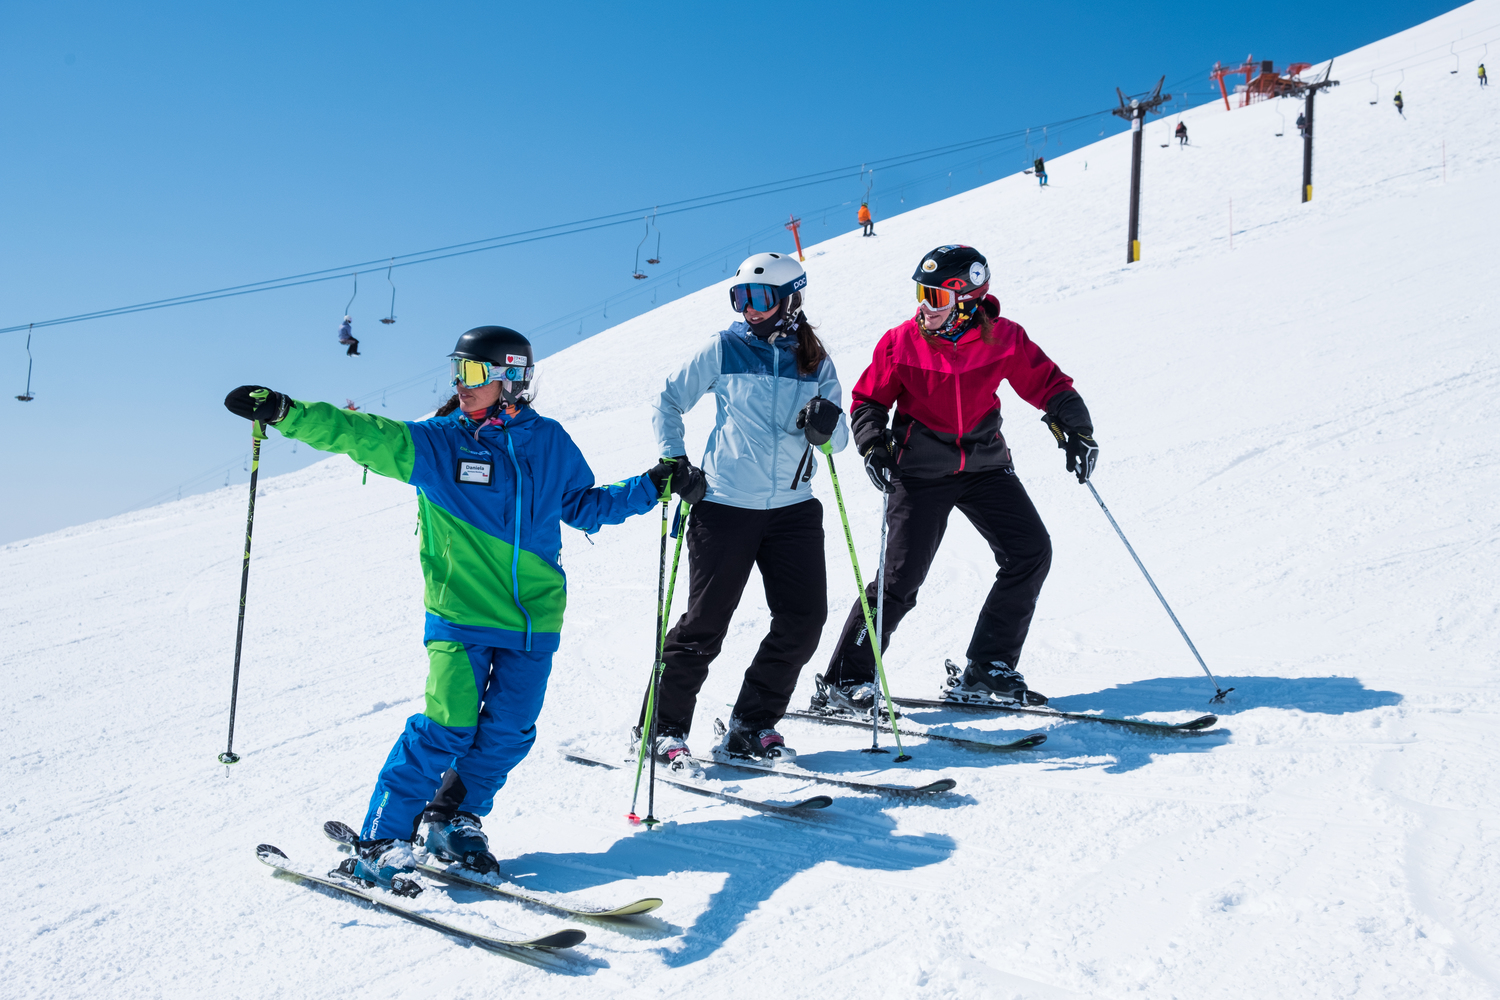 Mabey Ski_Japan_Niseko_GoSnow 2019 Group Lesson 3.jpg